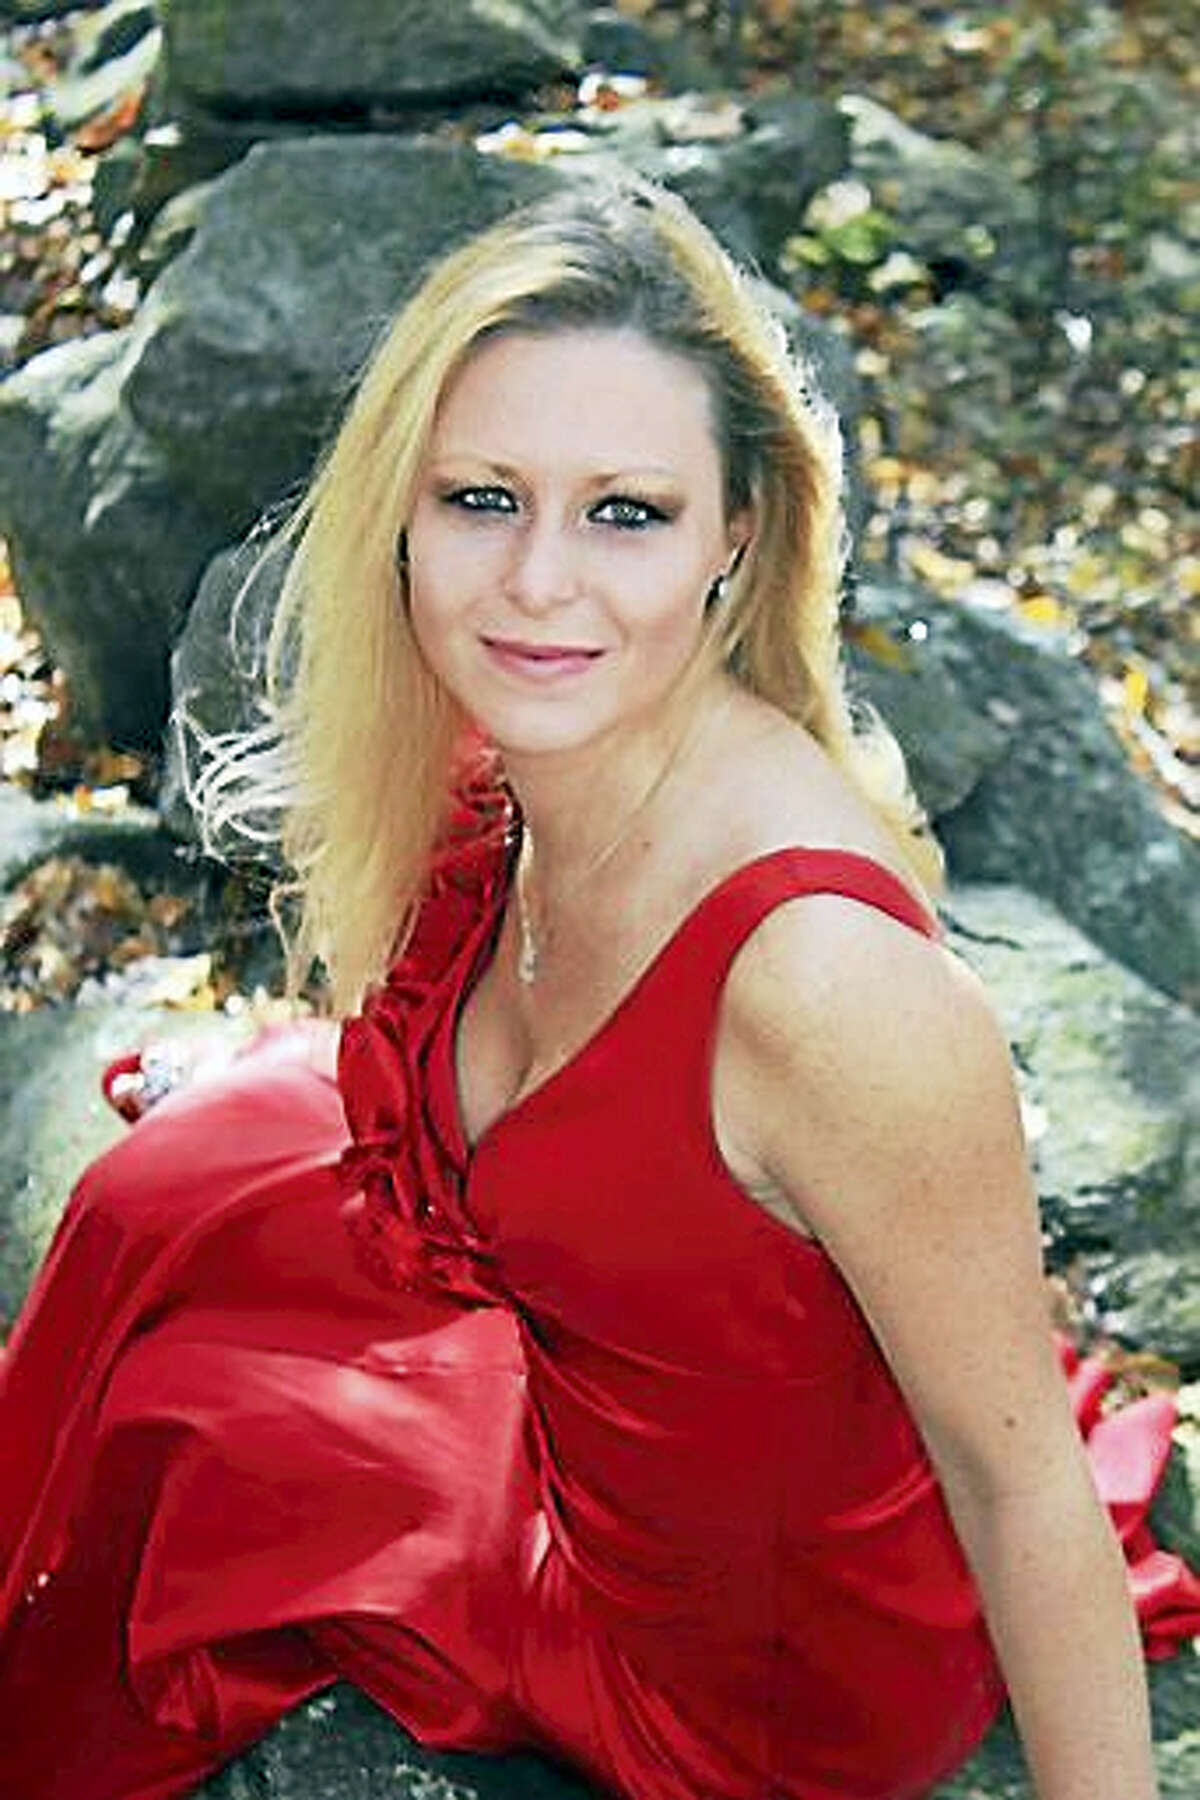 Contributed photo Soprano Heather O'Connor will perform with the Torrington Symphony Orchestra on March 11 in Torrington.